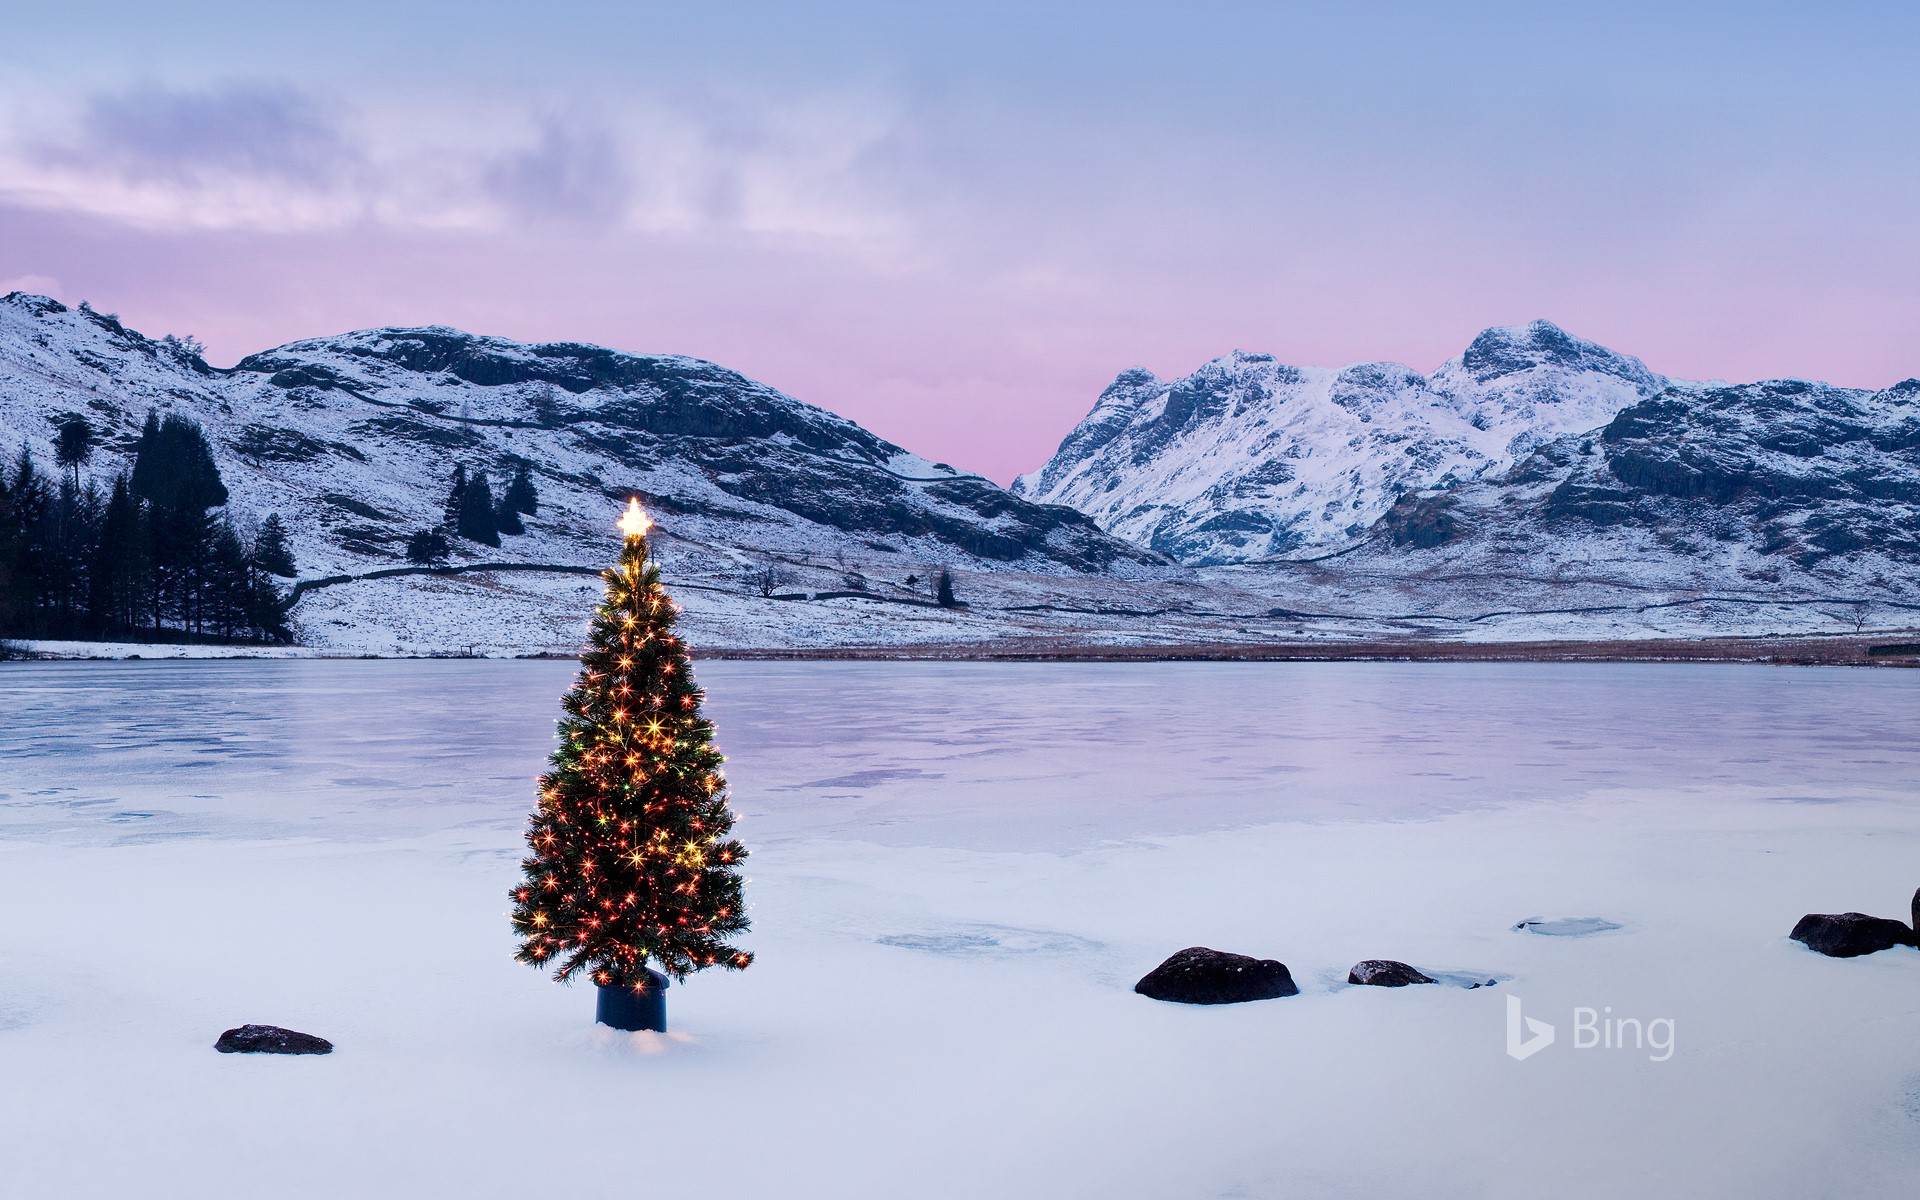 The Langdale Pikes with an illuminated Christmas tree, Lake District National Park